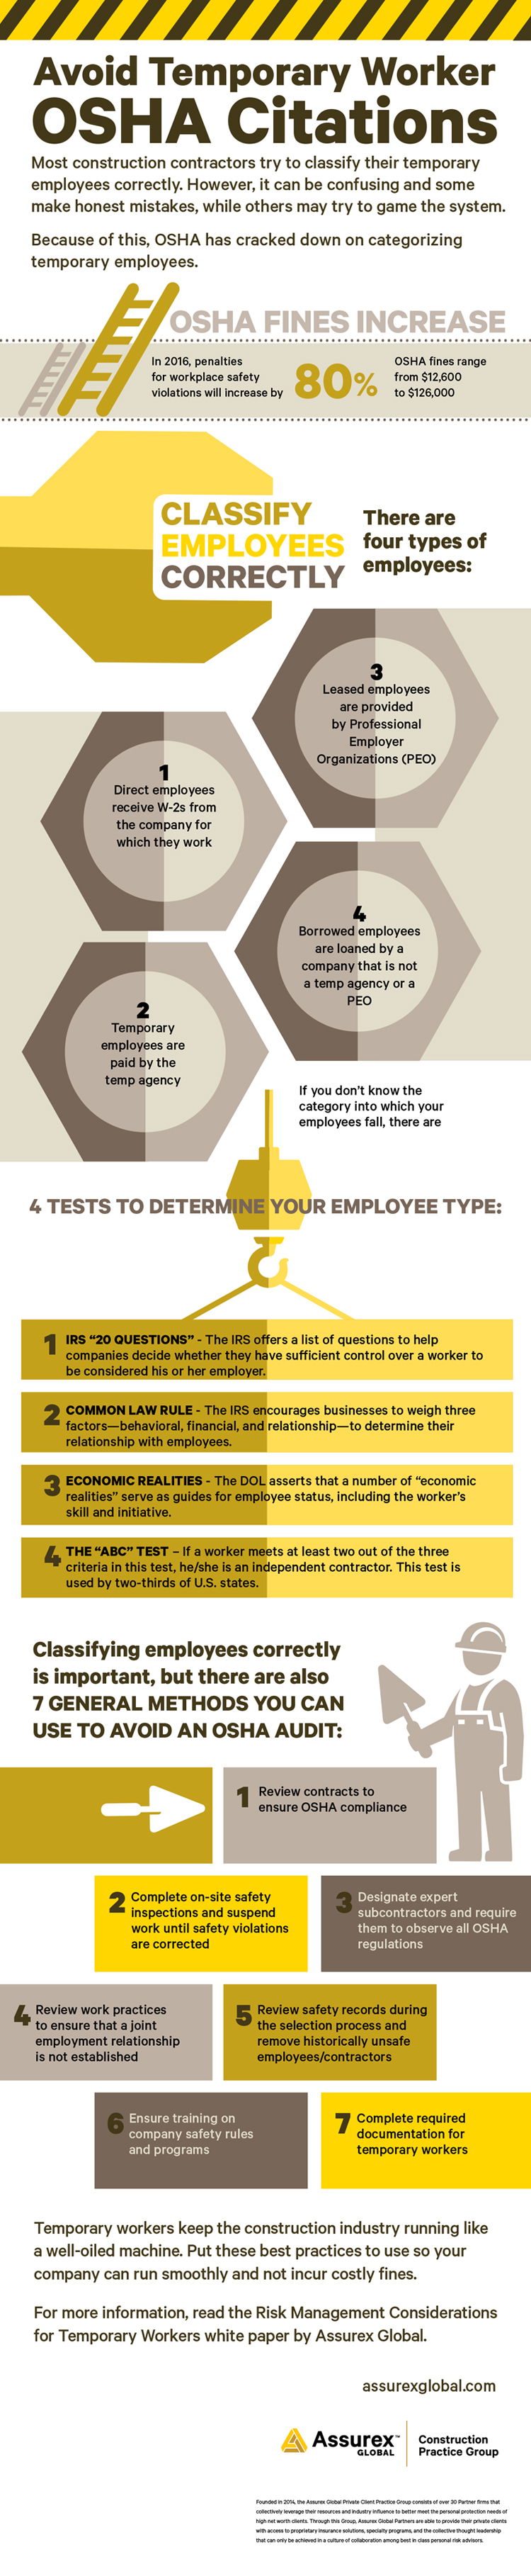 how to avoid temporary worker osha citations